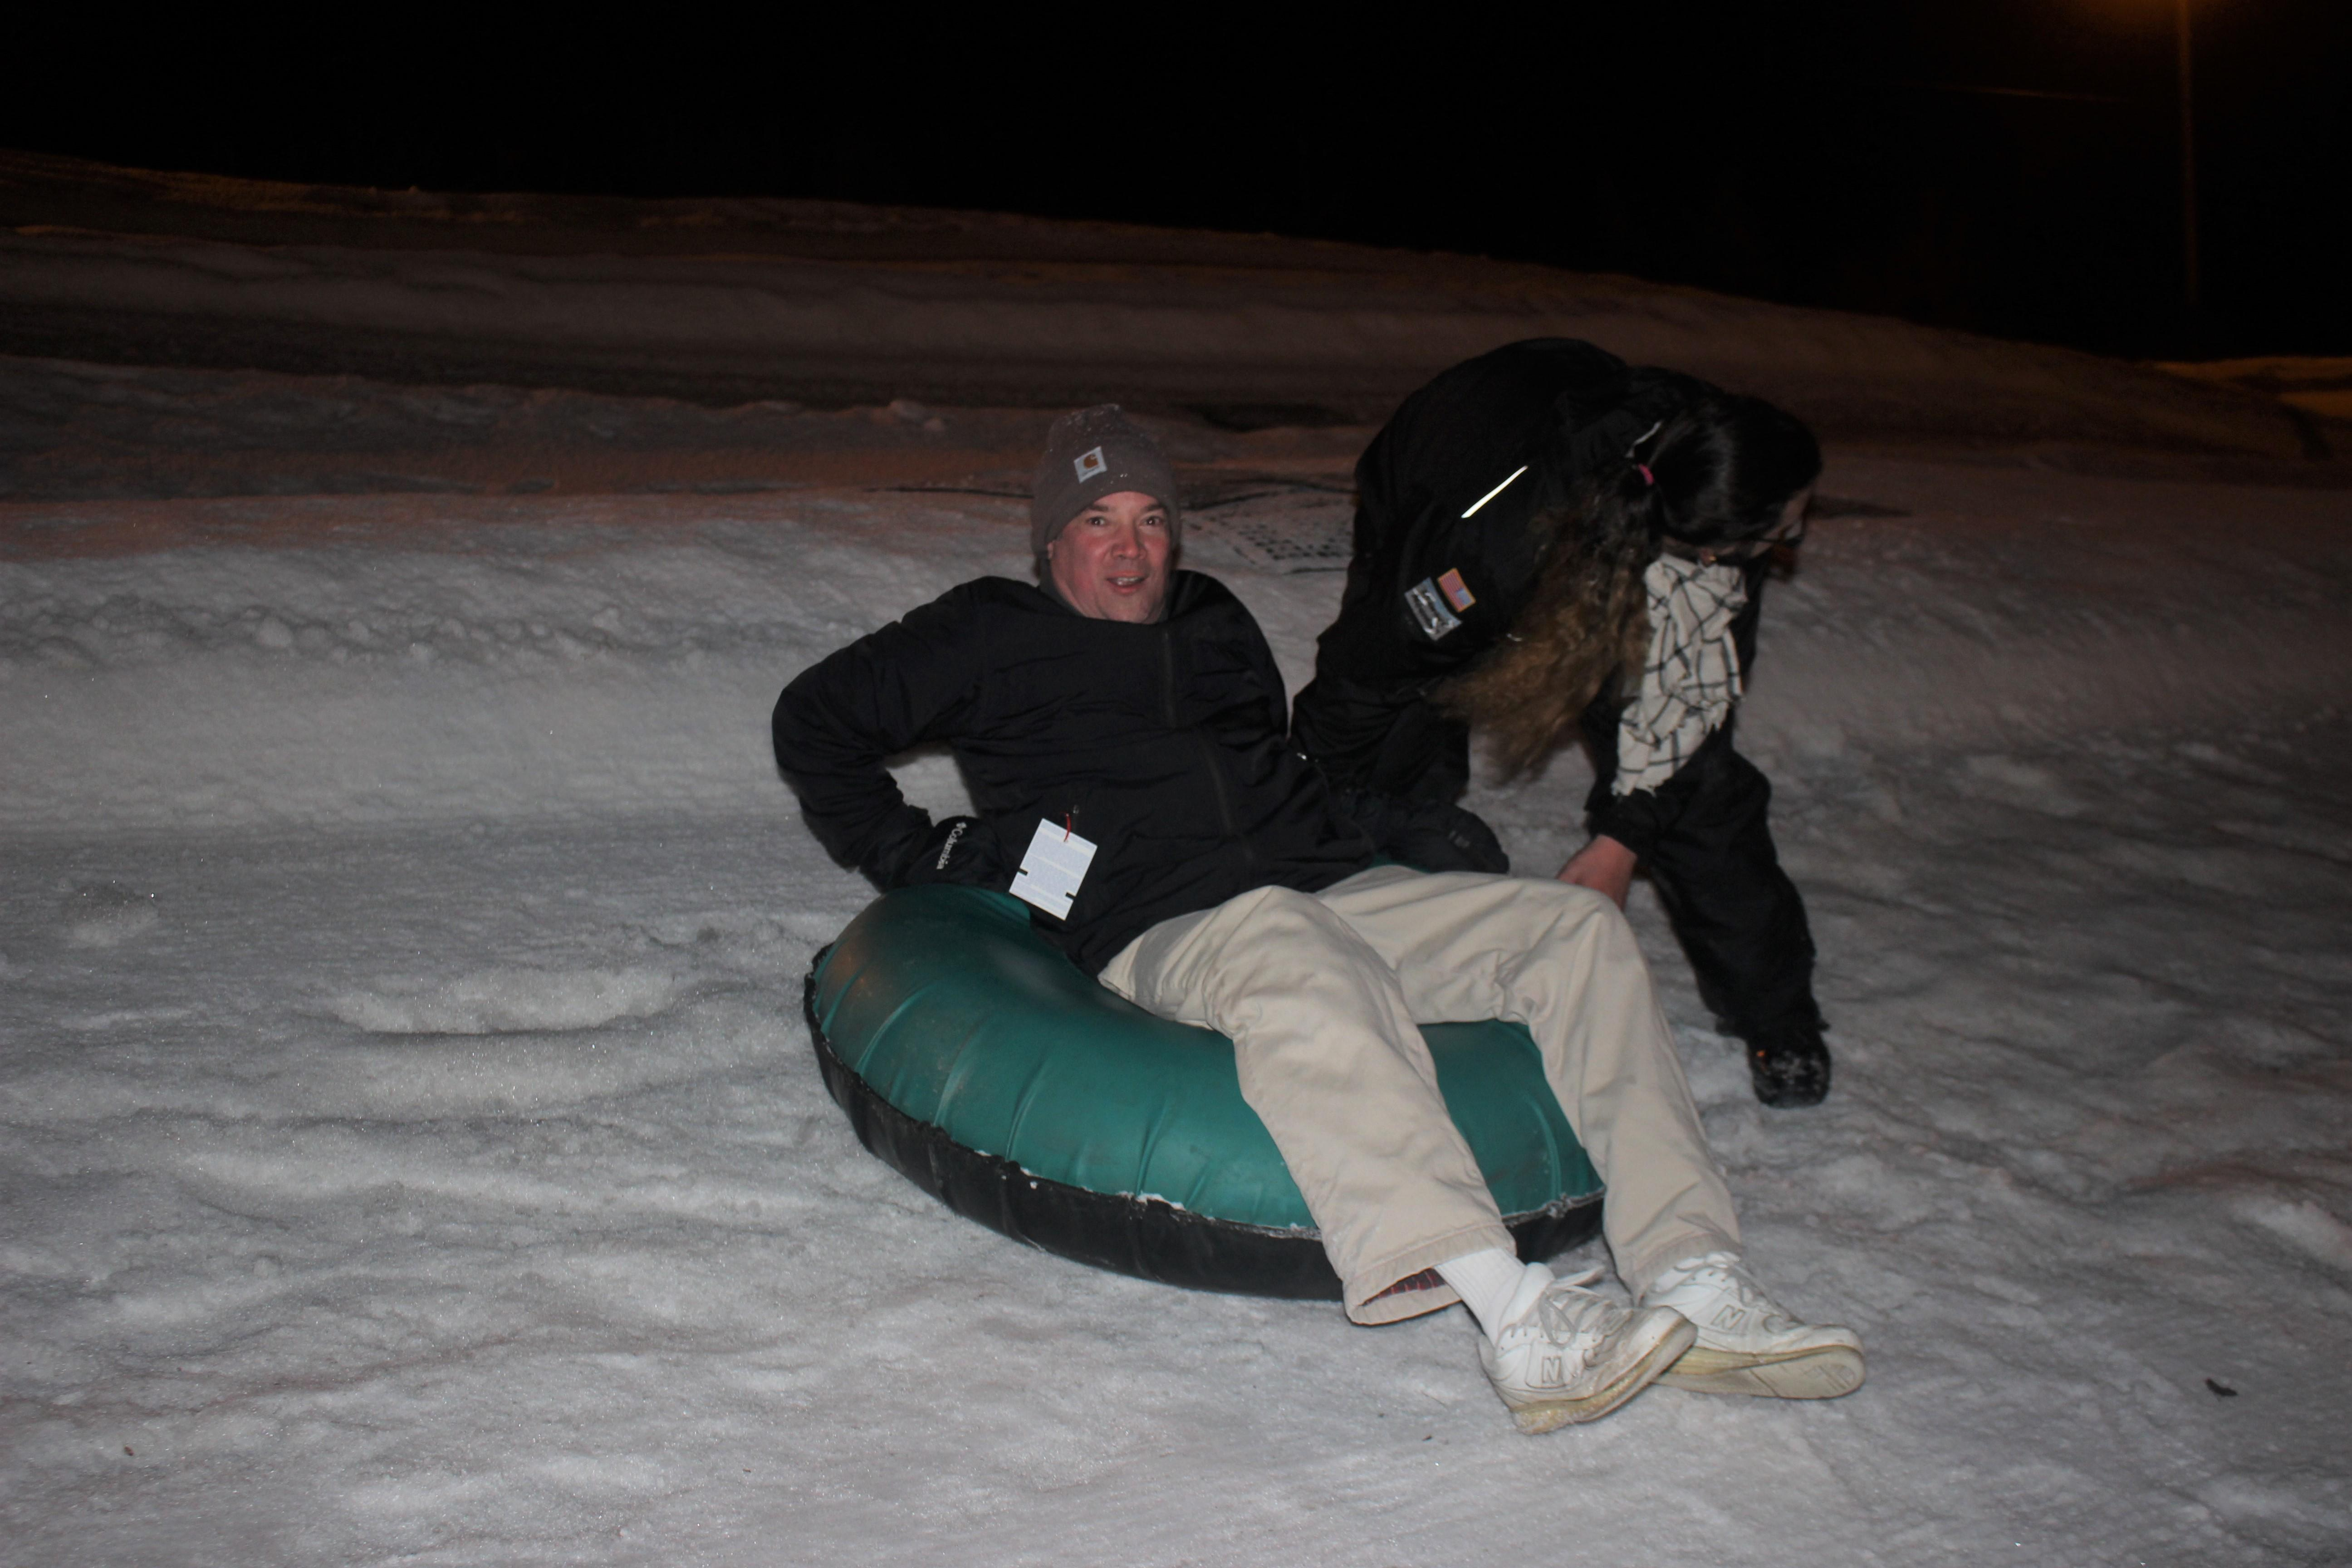 Staff member on a snow tube